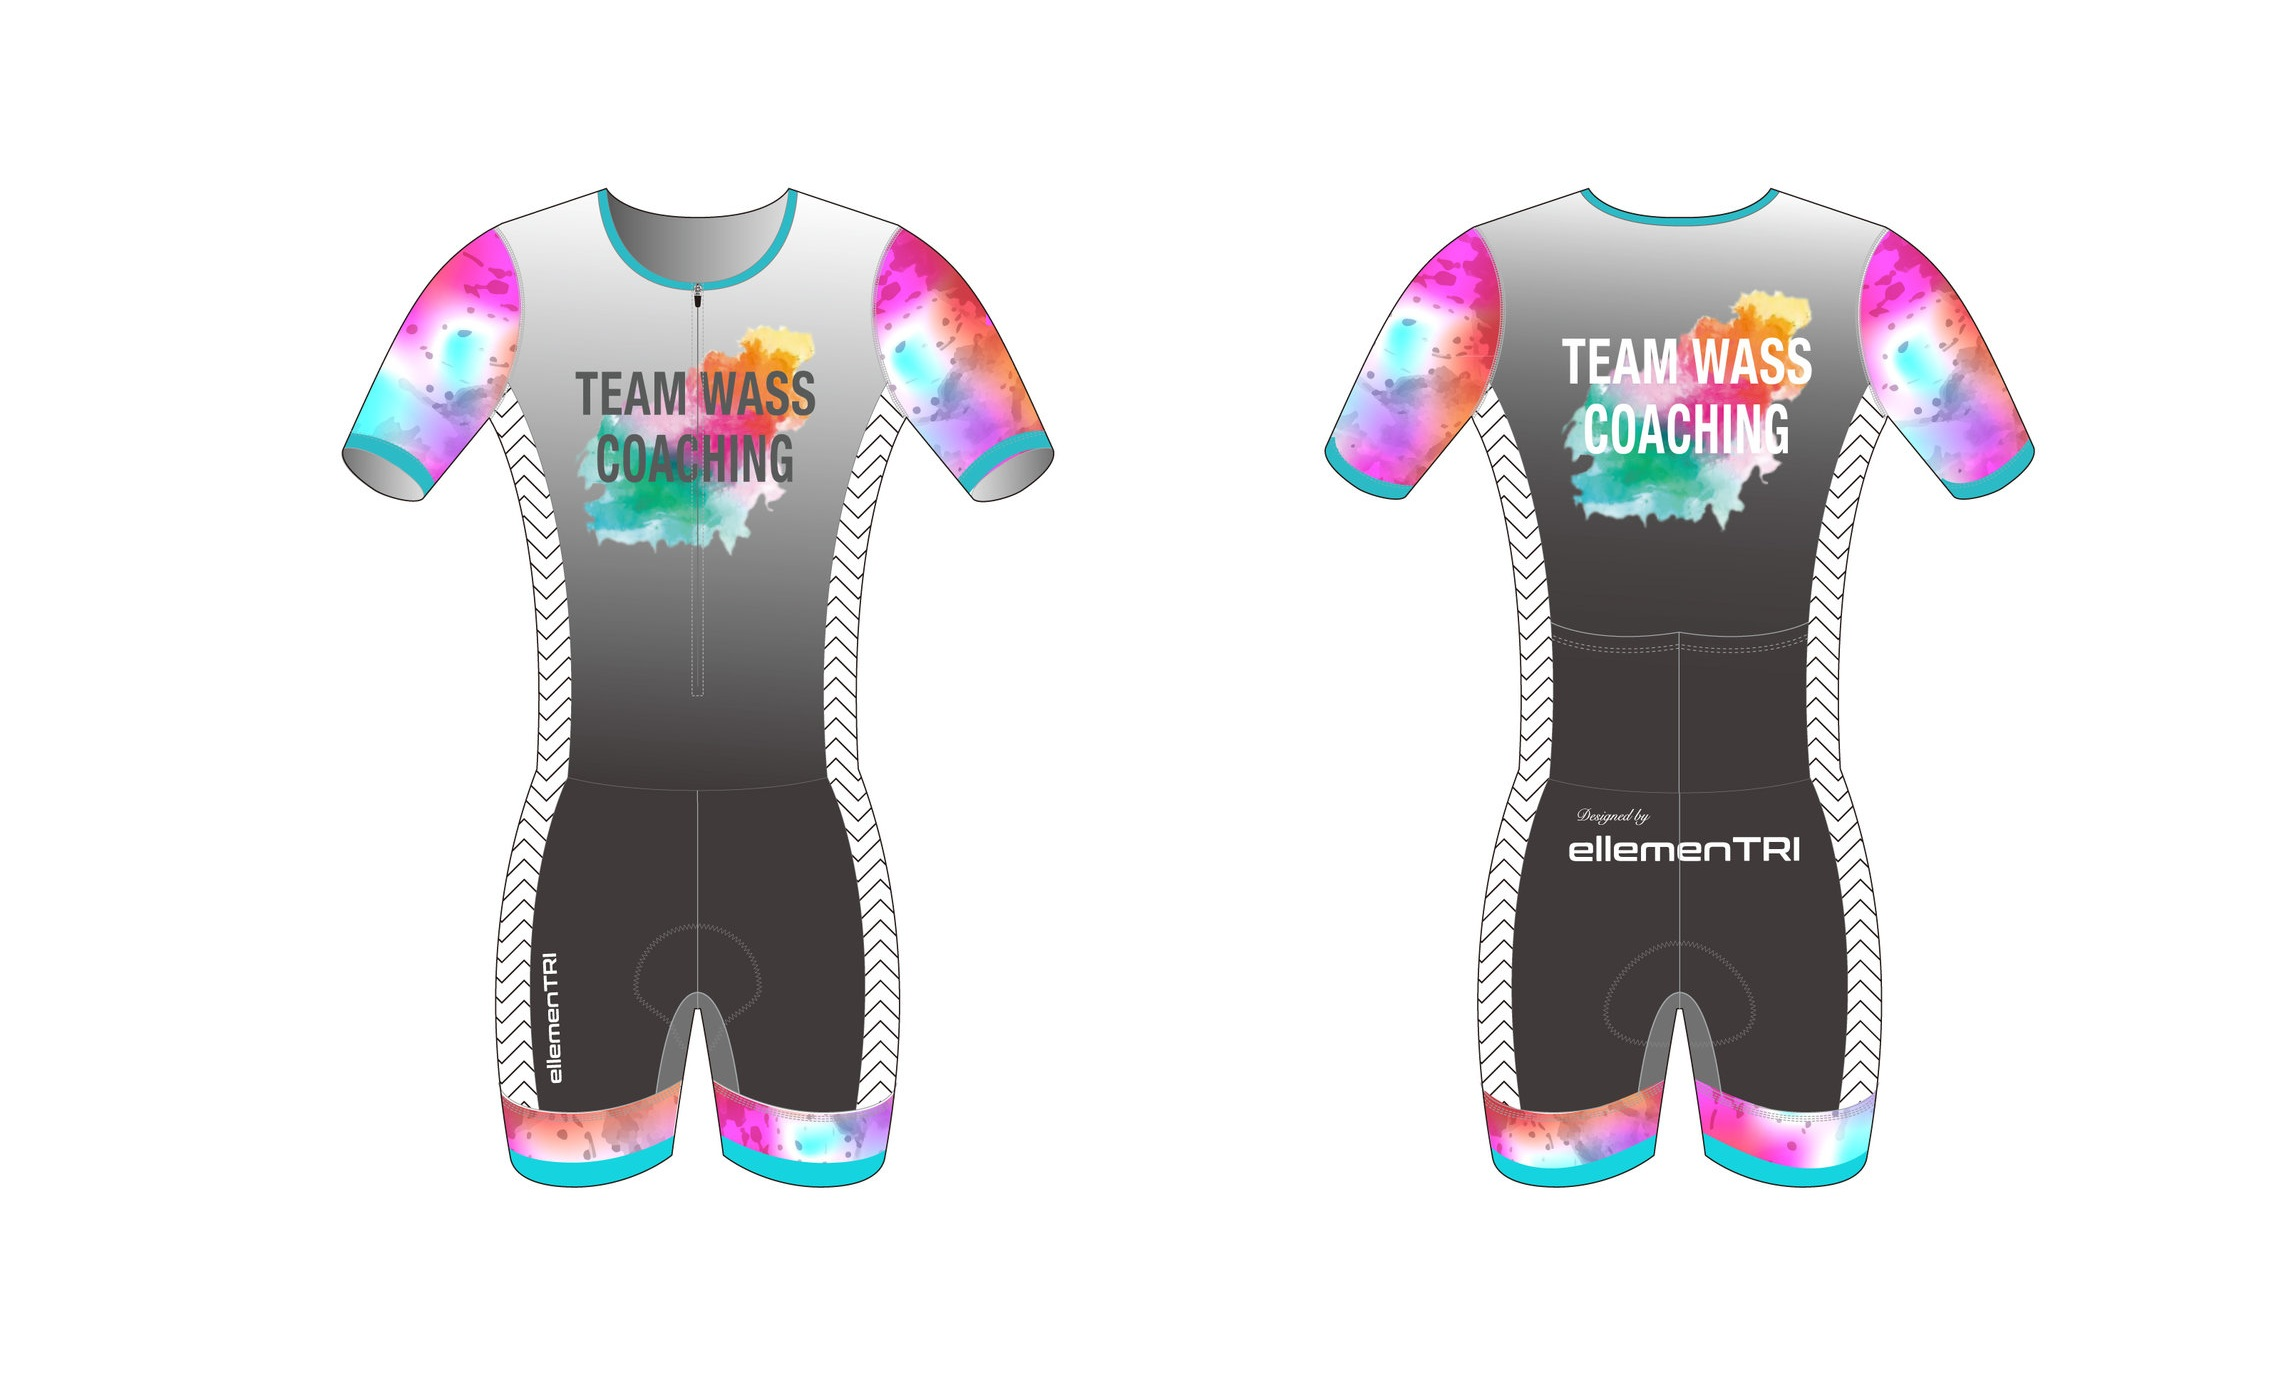 R+Wass+Mens+SS+Trisuit+Front+and+back.jpg